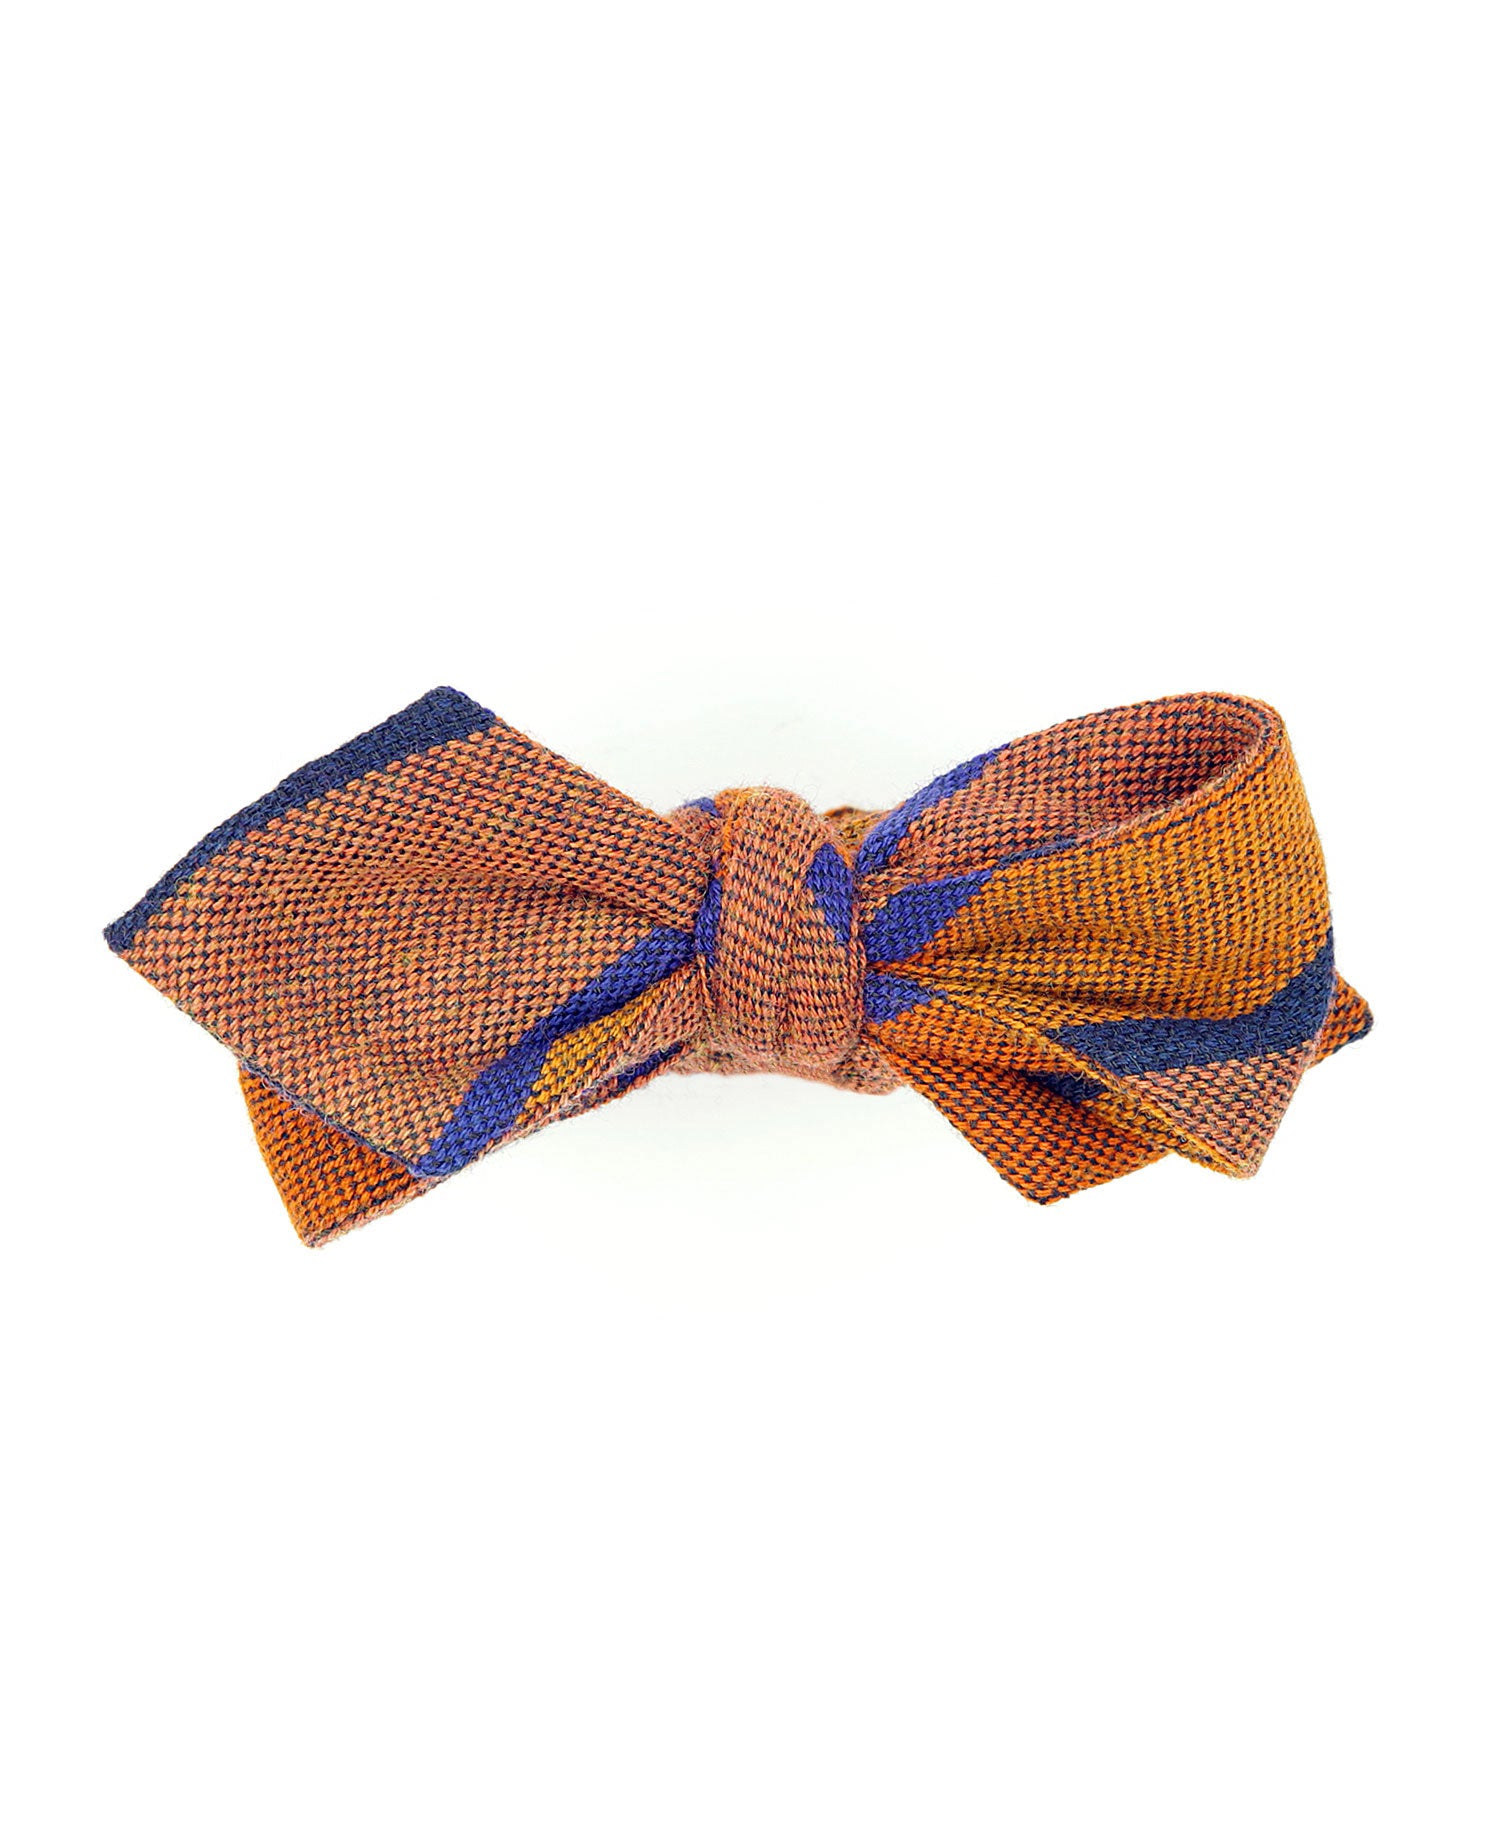 The Gramercy Bow Tie